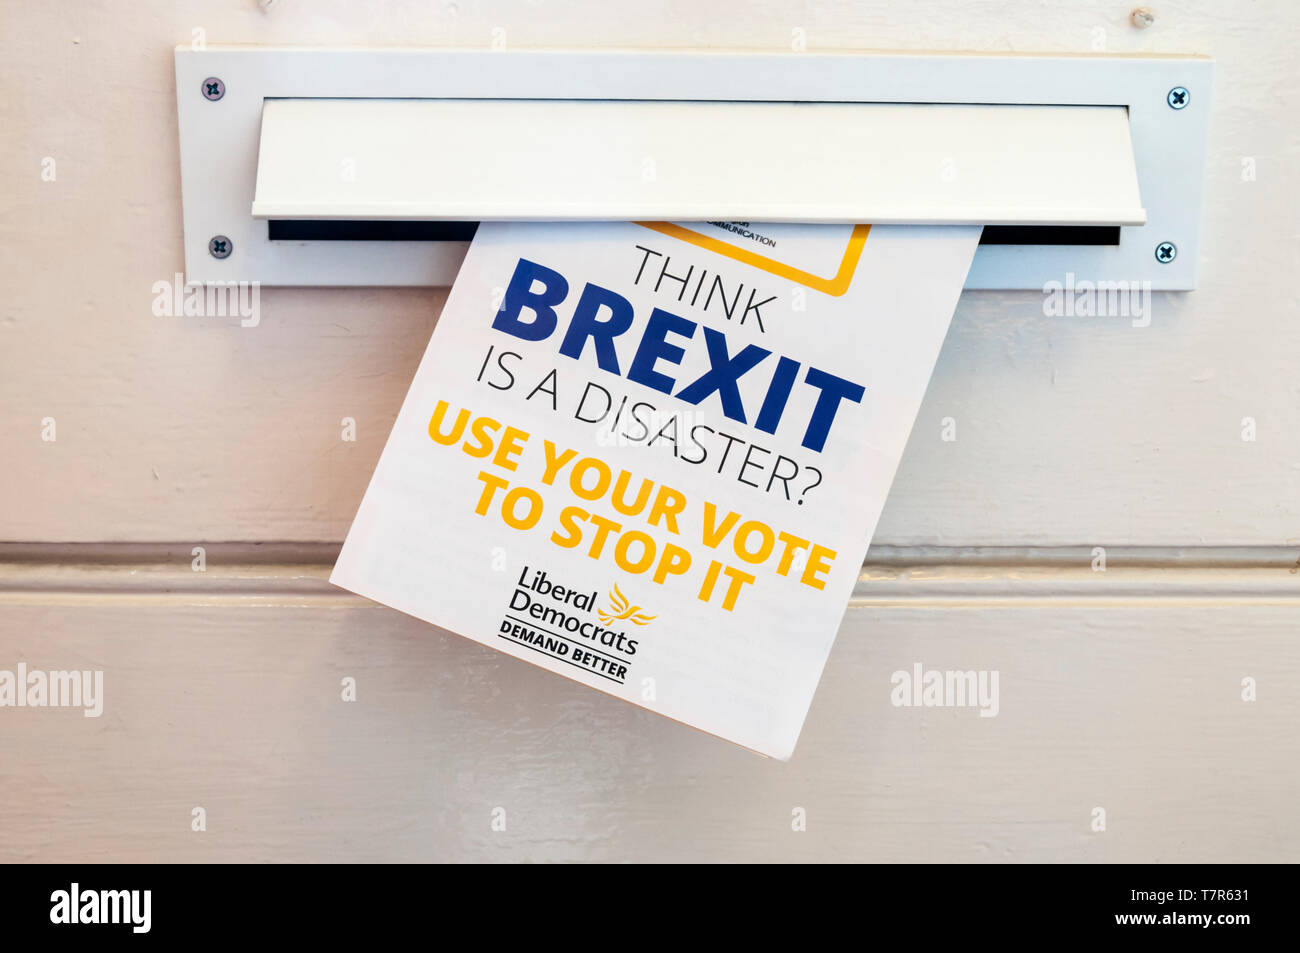 European election leaflet 2019 from Liberal Democrats suggests people use their vote to stop Brexit. Stock Photo